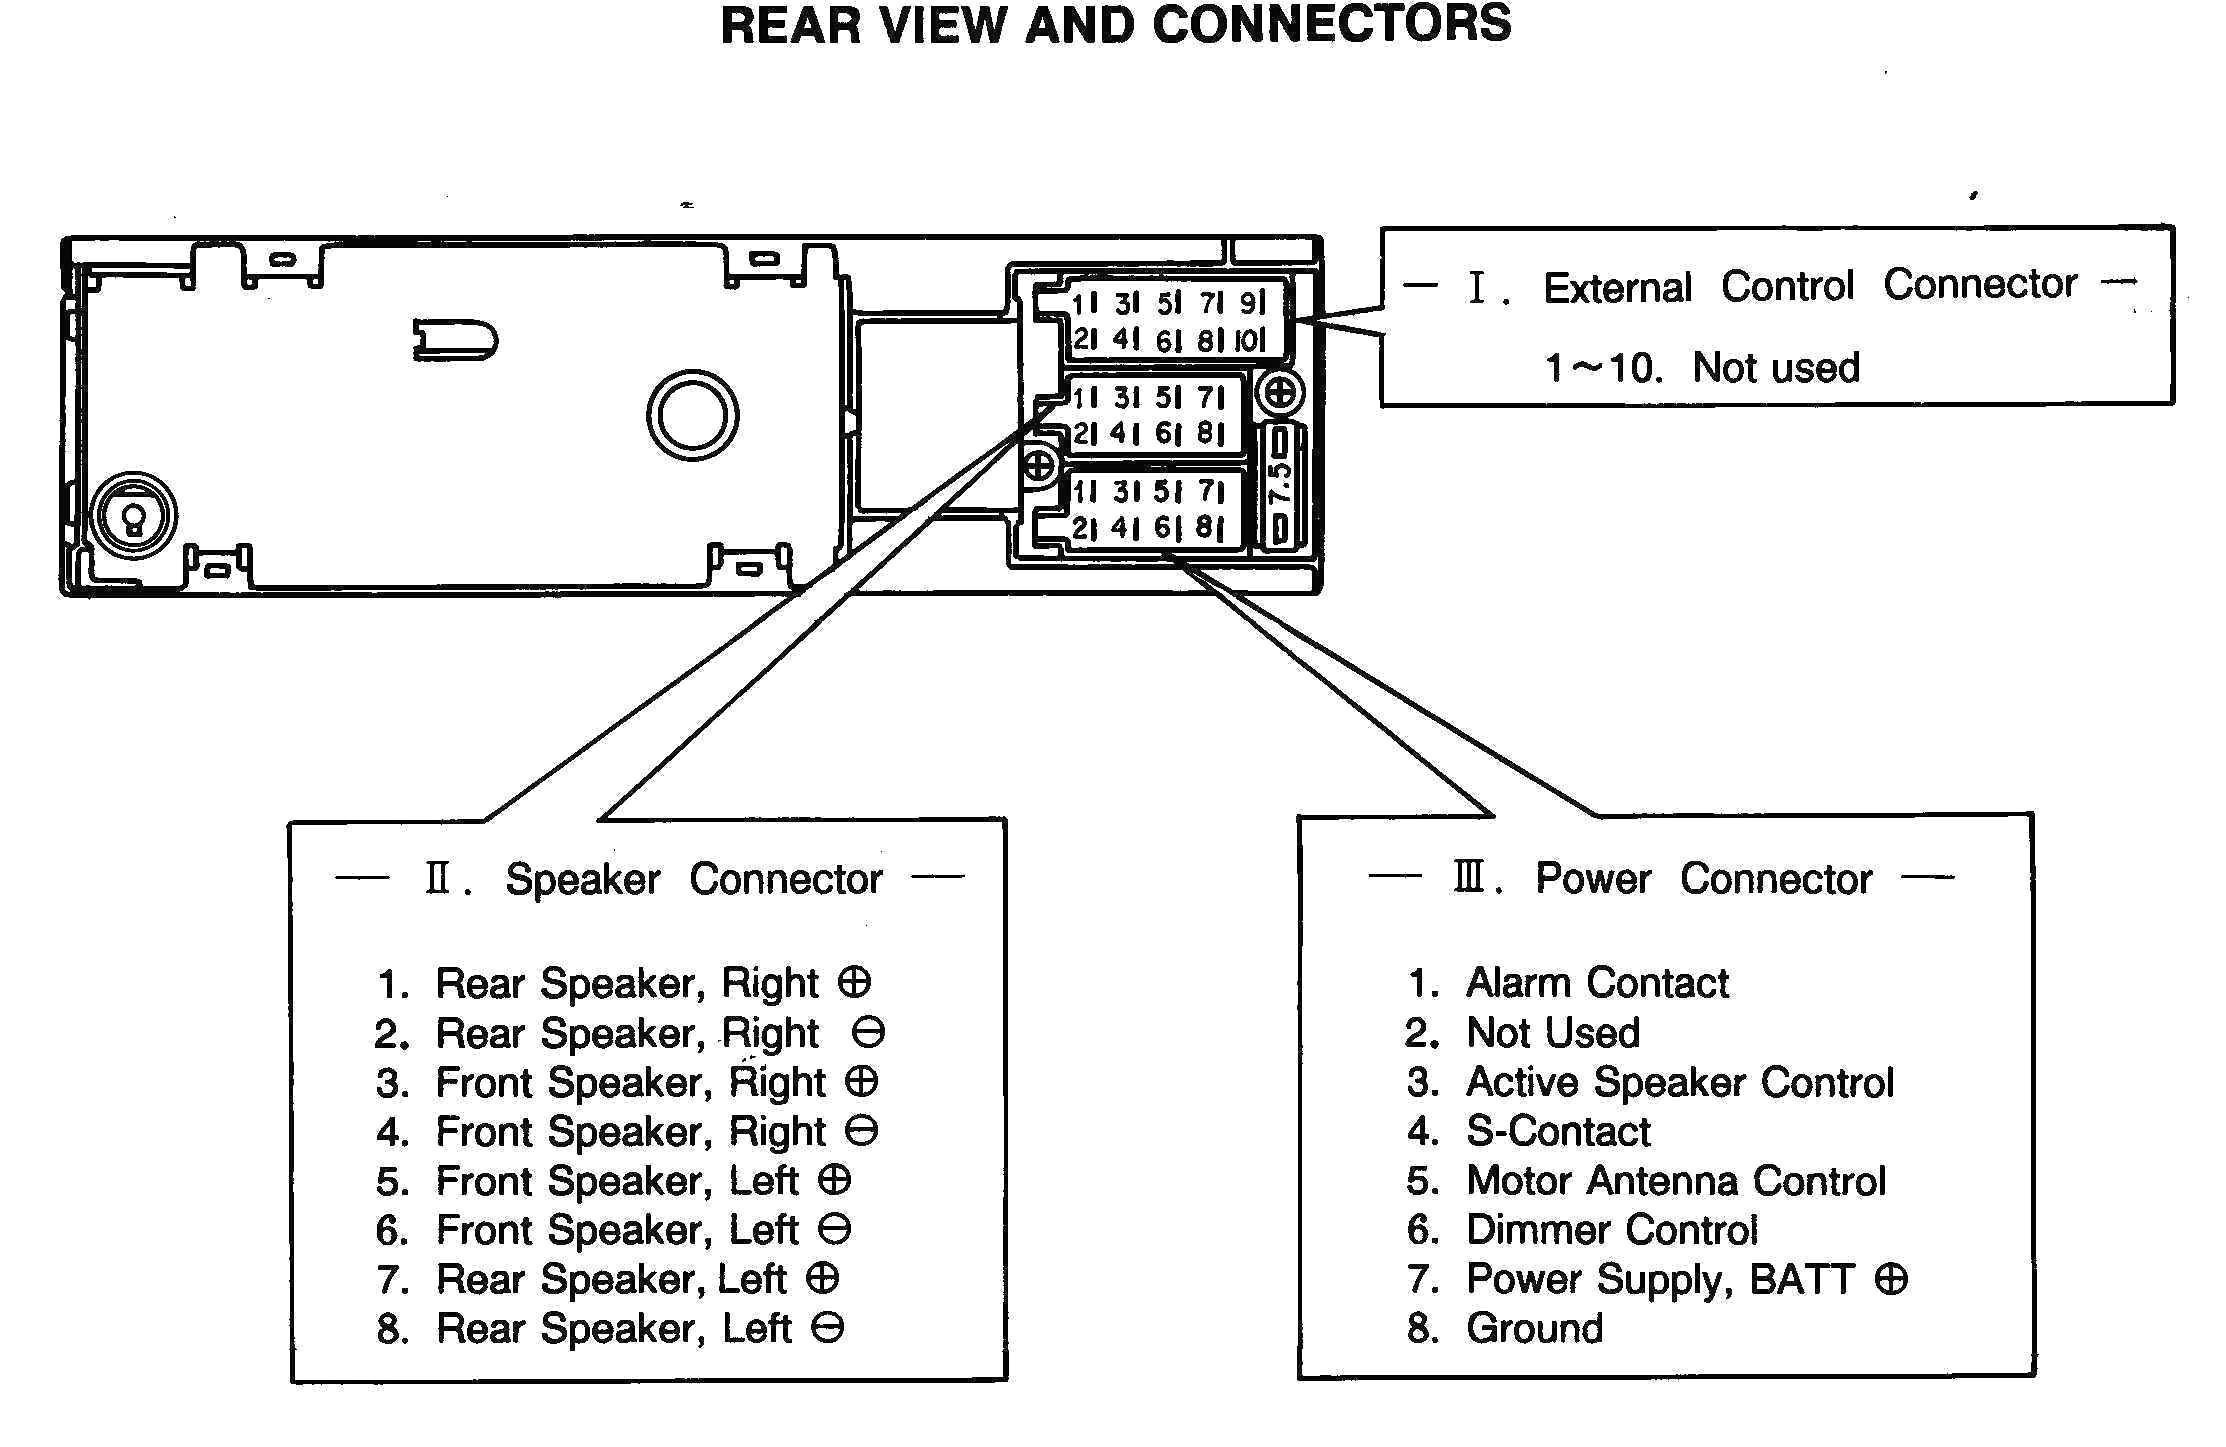 Vw 2 0 Engine Diagram 2 Vw Stereo Wiring Harness Experts Wiring Diagram • Of Vw 2 0 Engine Diagram 2